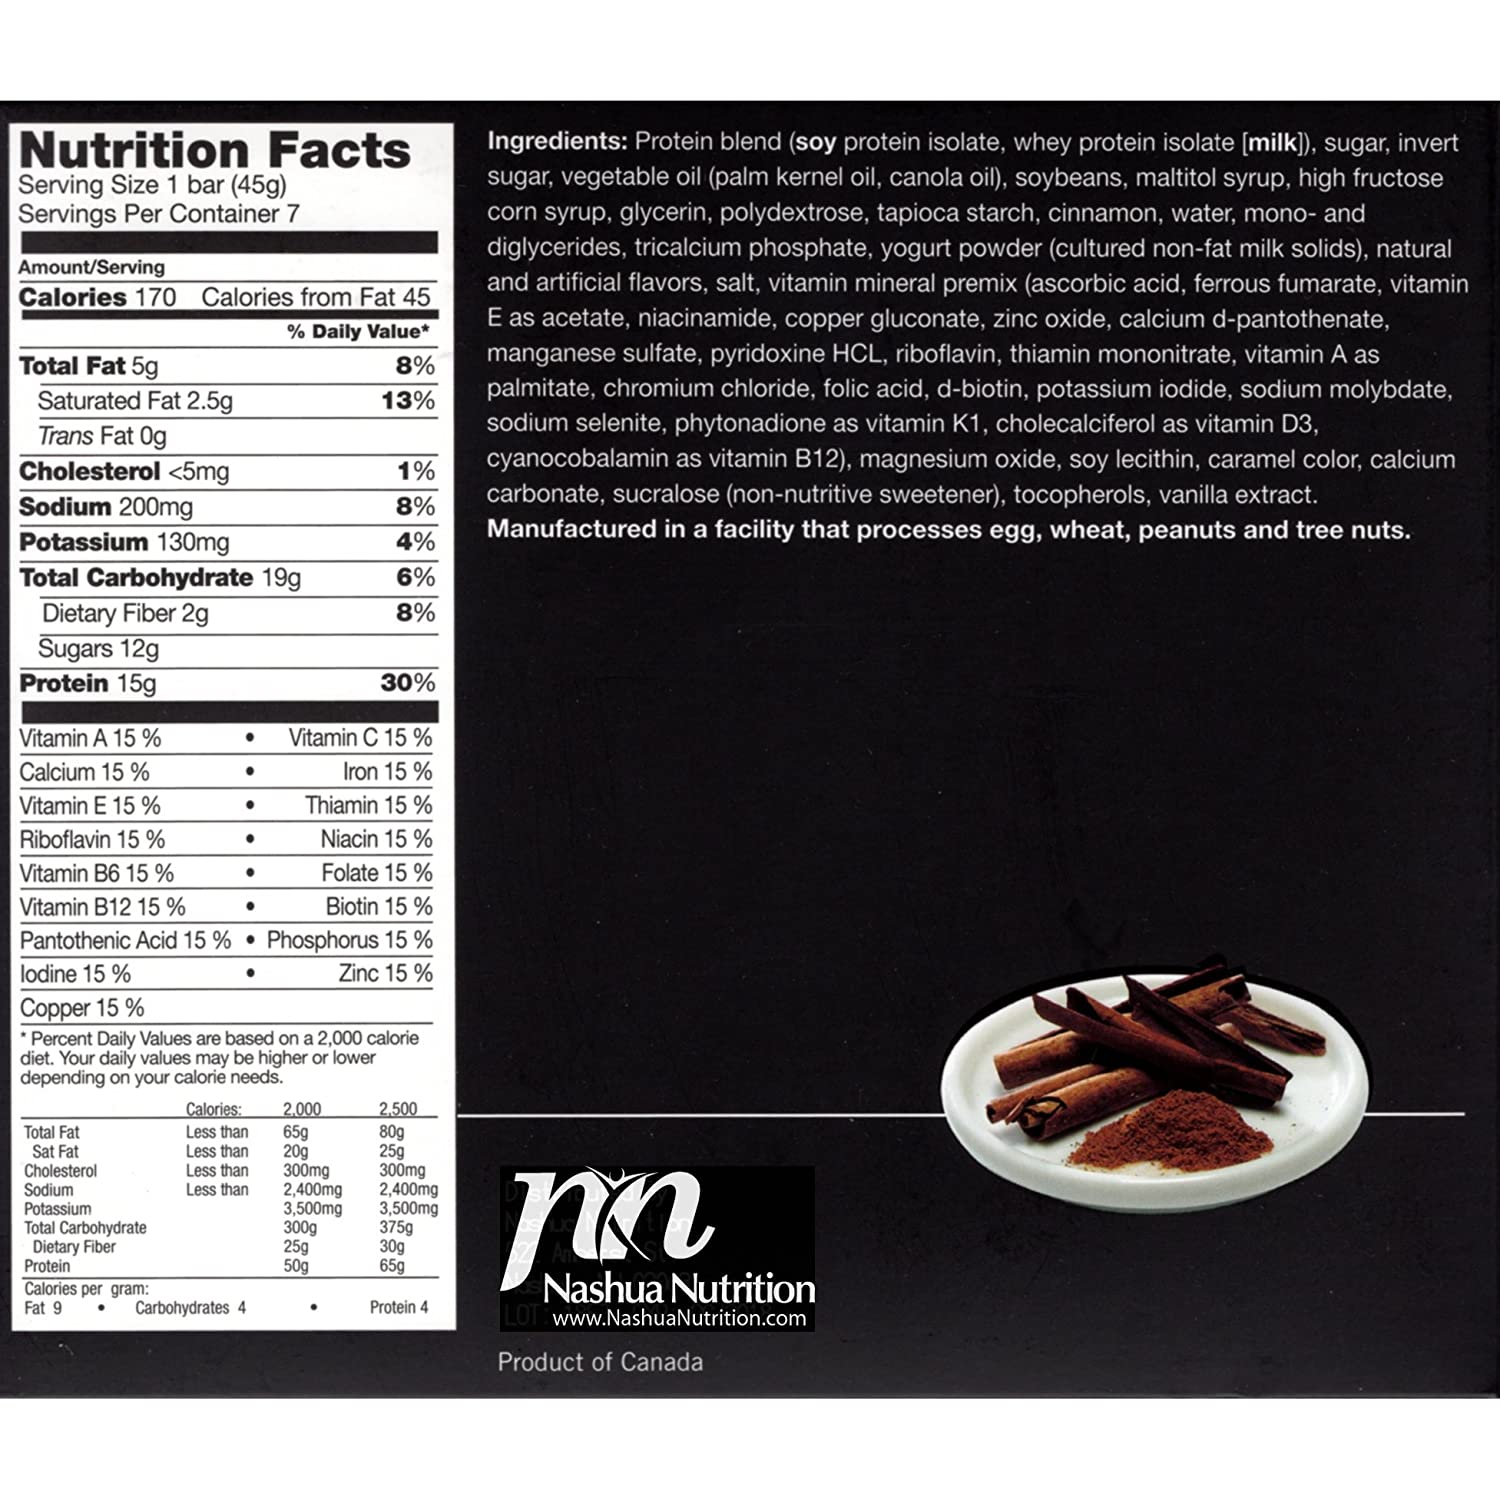 Amazon.com : Proti-Thin - Nutty Caramel Crunch - Protein Bar - Ideal Protein Compatible - 15g Protein - Low Carb Diet Bar - Gluten Free (7/Box) : Grocery ...